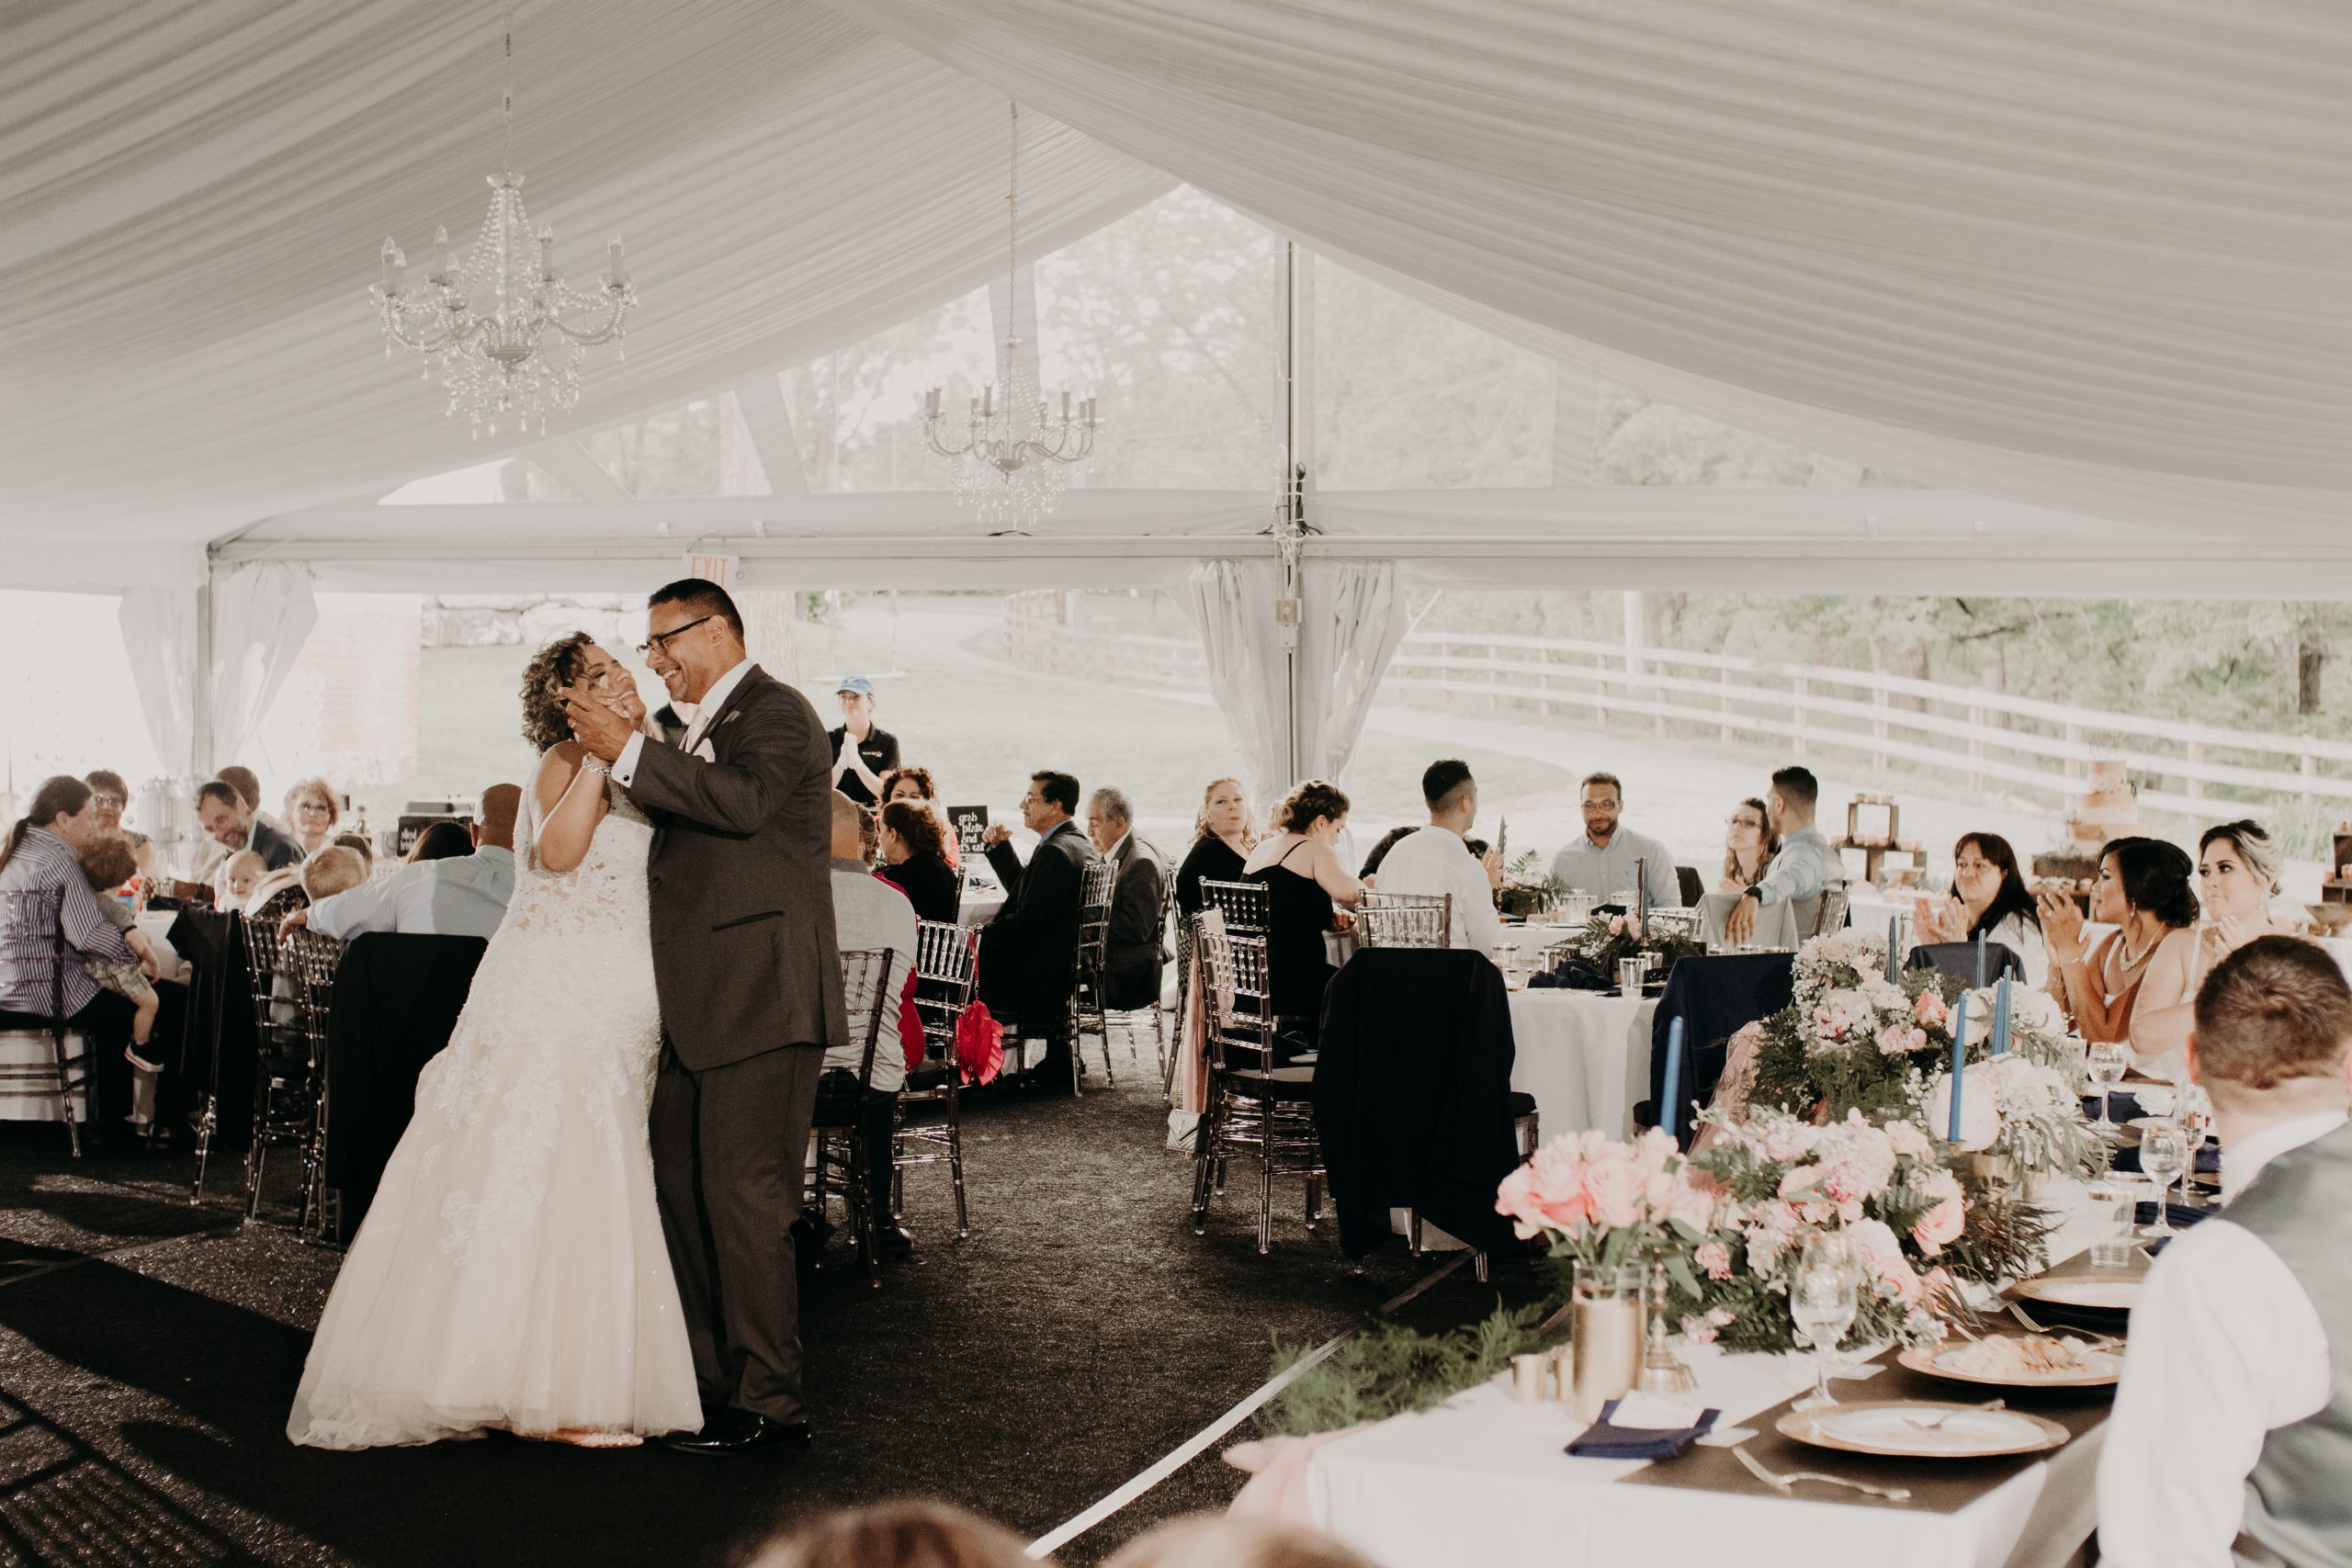 Daddy daughter dance to start off the reception. Christine and Richard wed on the Chestnut Hill Villa grounds on May of 2019. This organic ethereal styled wedding was captured by Garnet Dahlia Photography and featured on Dream Weddings.